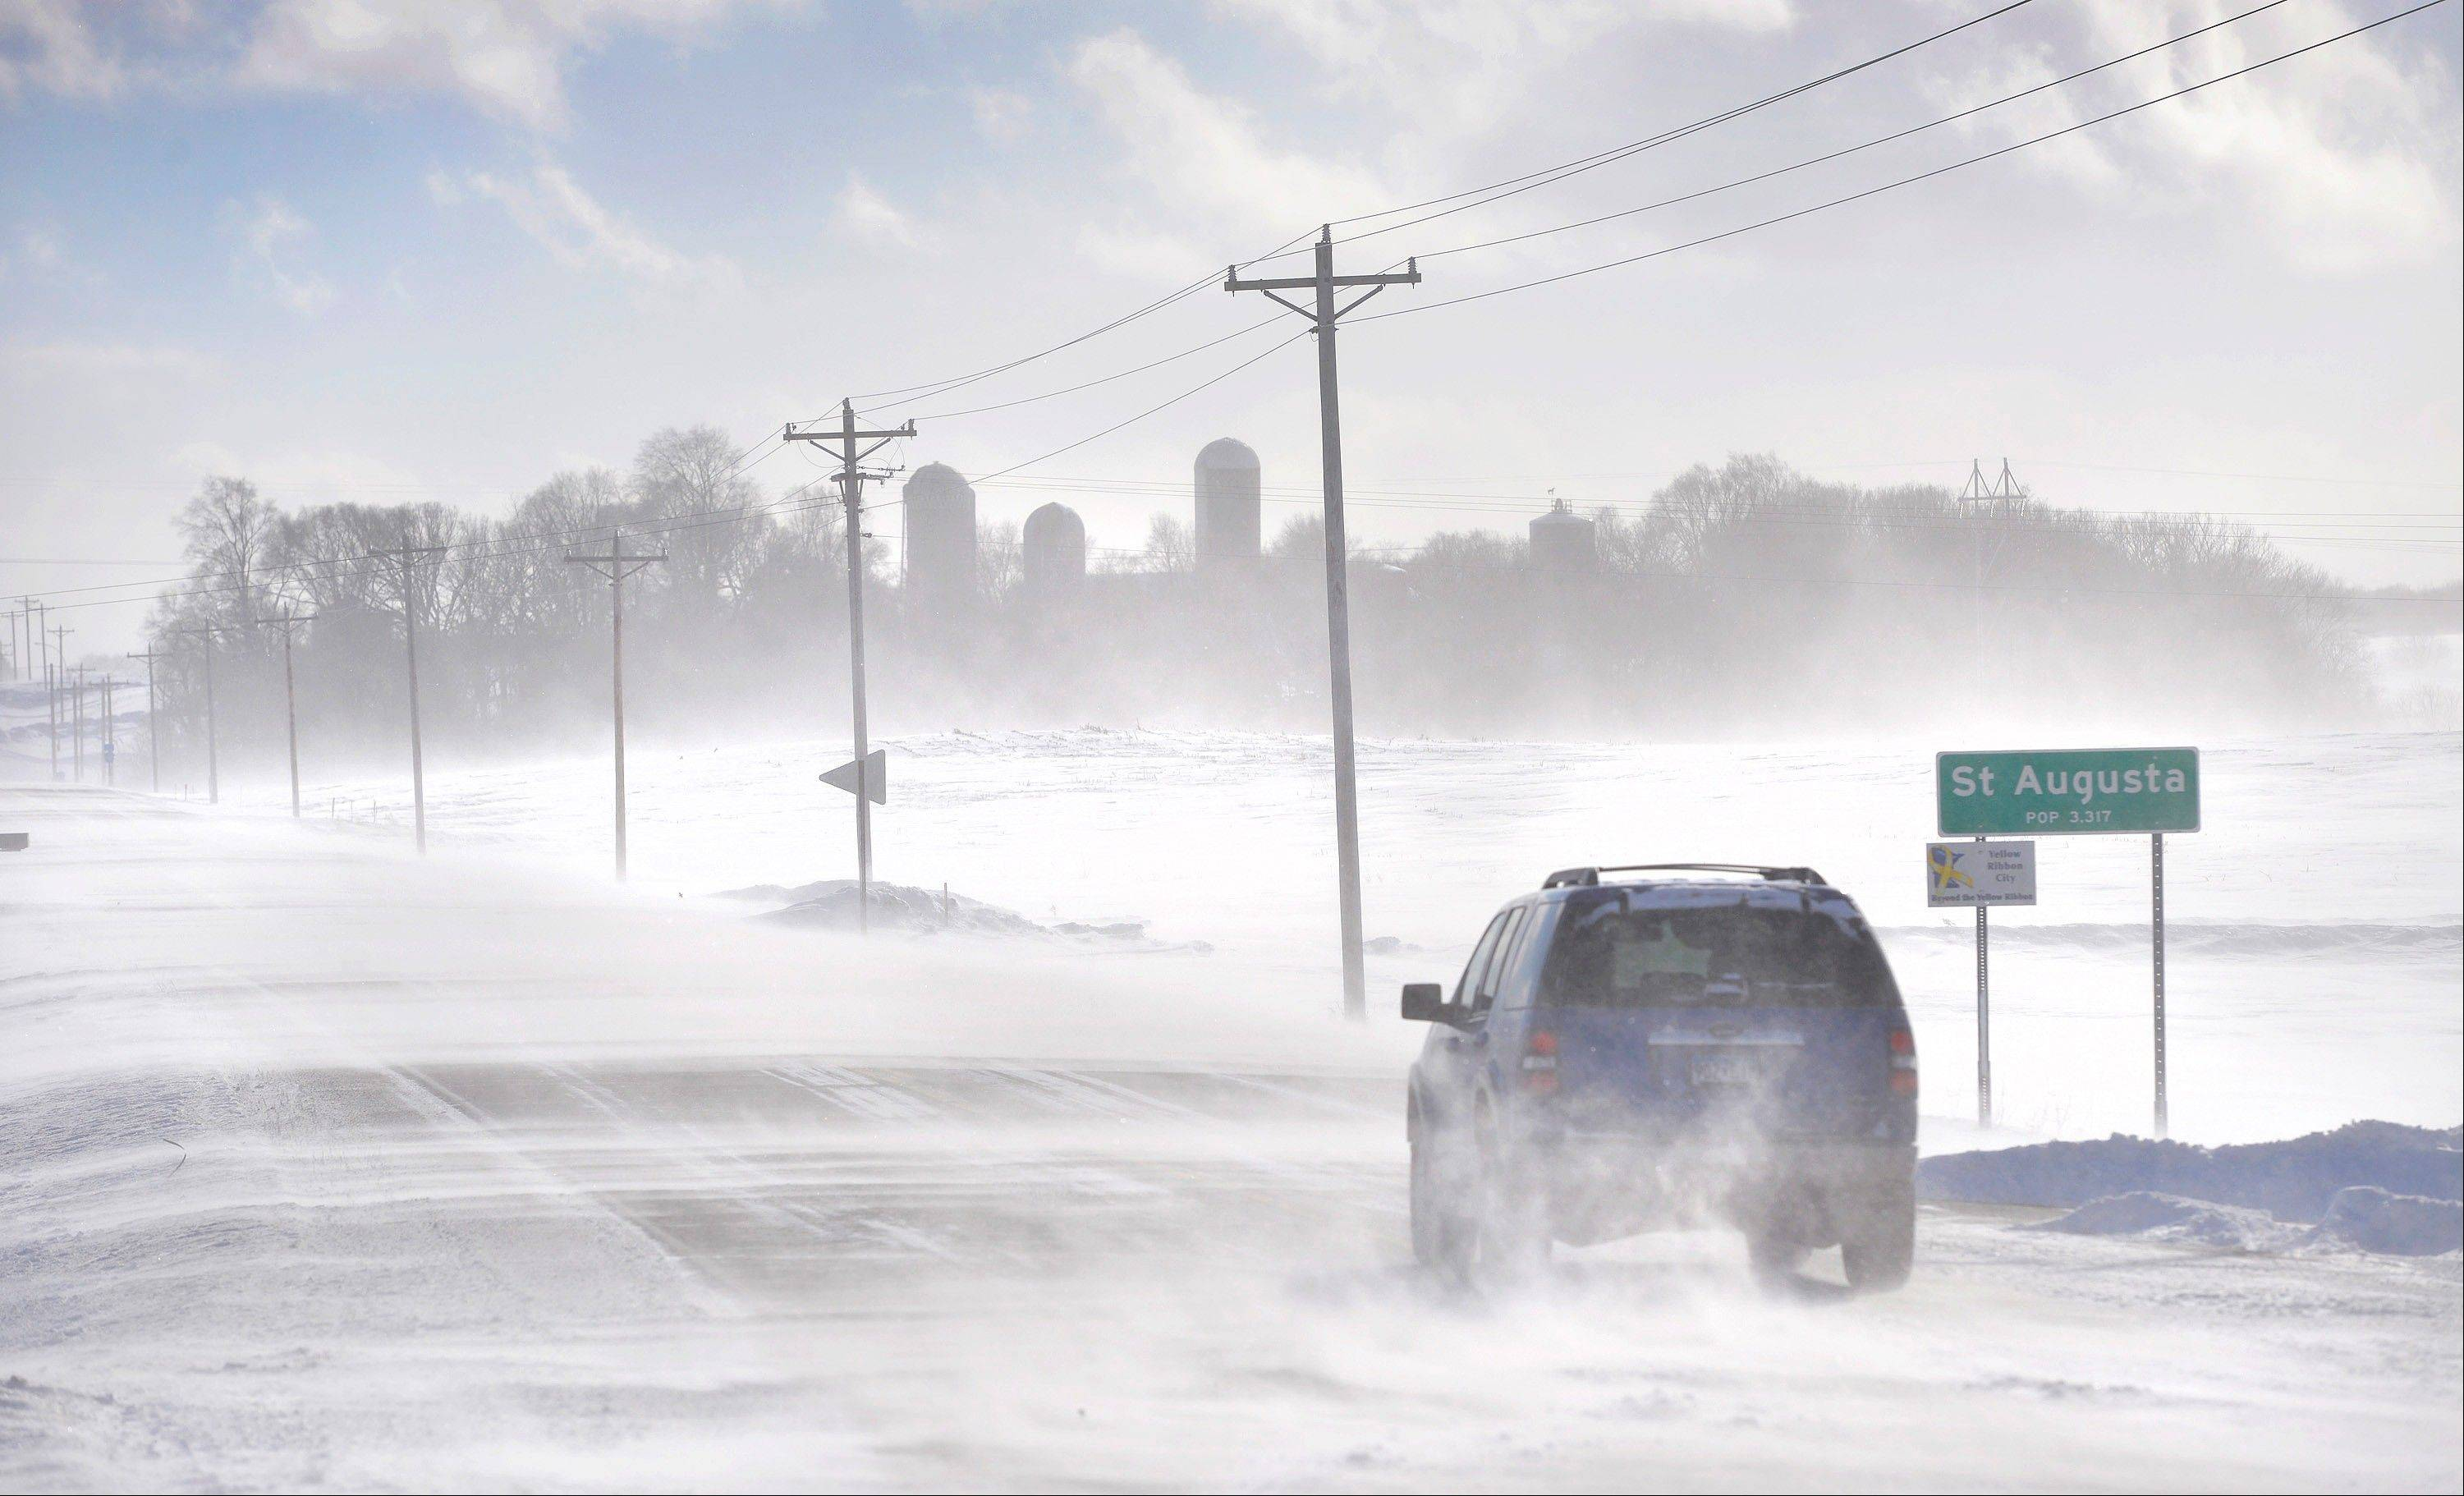 An SUV ventures past the St. Augusta, Minn., city limits sign in near white-out conditions Sunday afternoon. An unusual weather pattern driving bitterly cold air from the Arctic Circle south across a huge swath of the Midwest is expected to send temperatures plummeting Monday from Minneapolis to Louisville, Ky., the latest punch from a winter that is in some areas shaping up as one of the coldest on record.